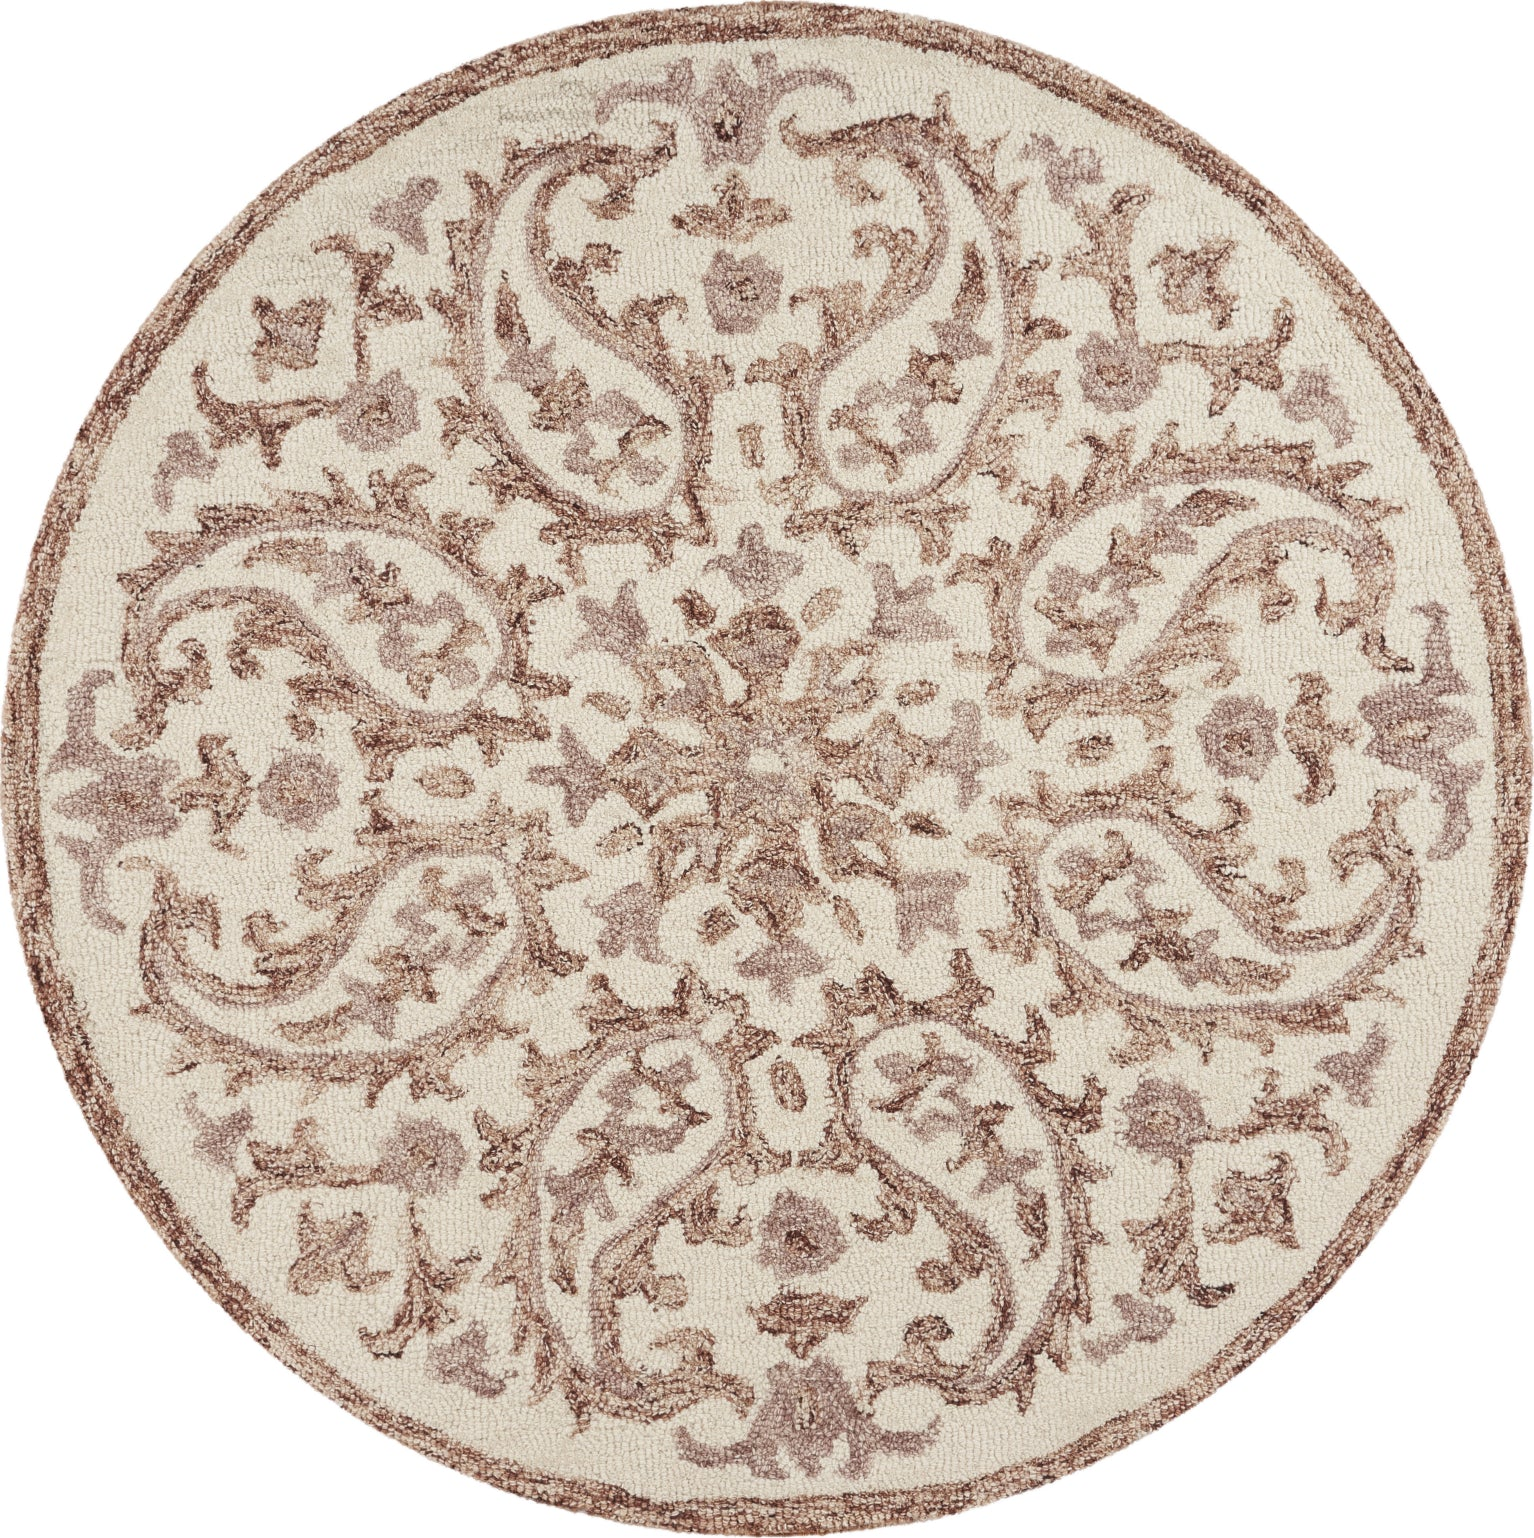 LR Resources Dazzle Faded Floral Ivory / Red Area Rug main image